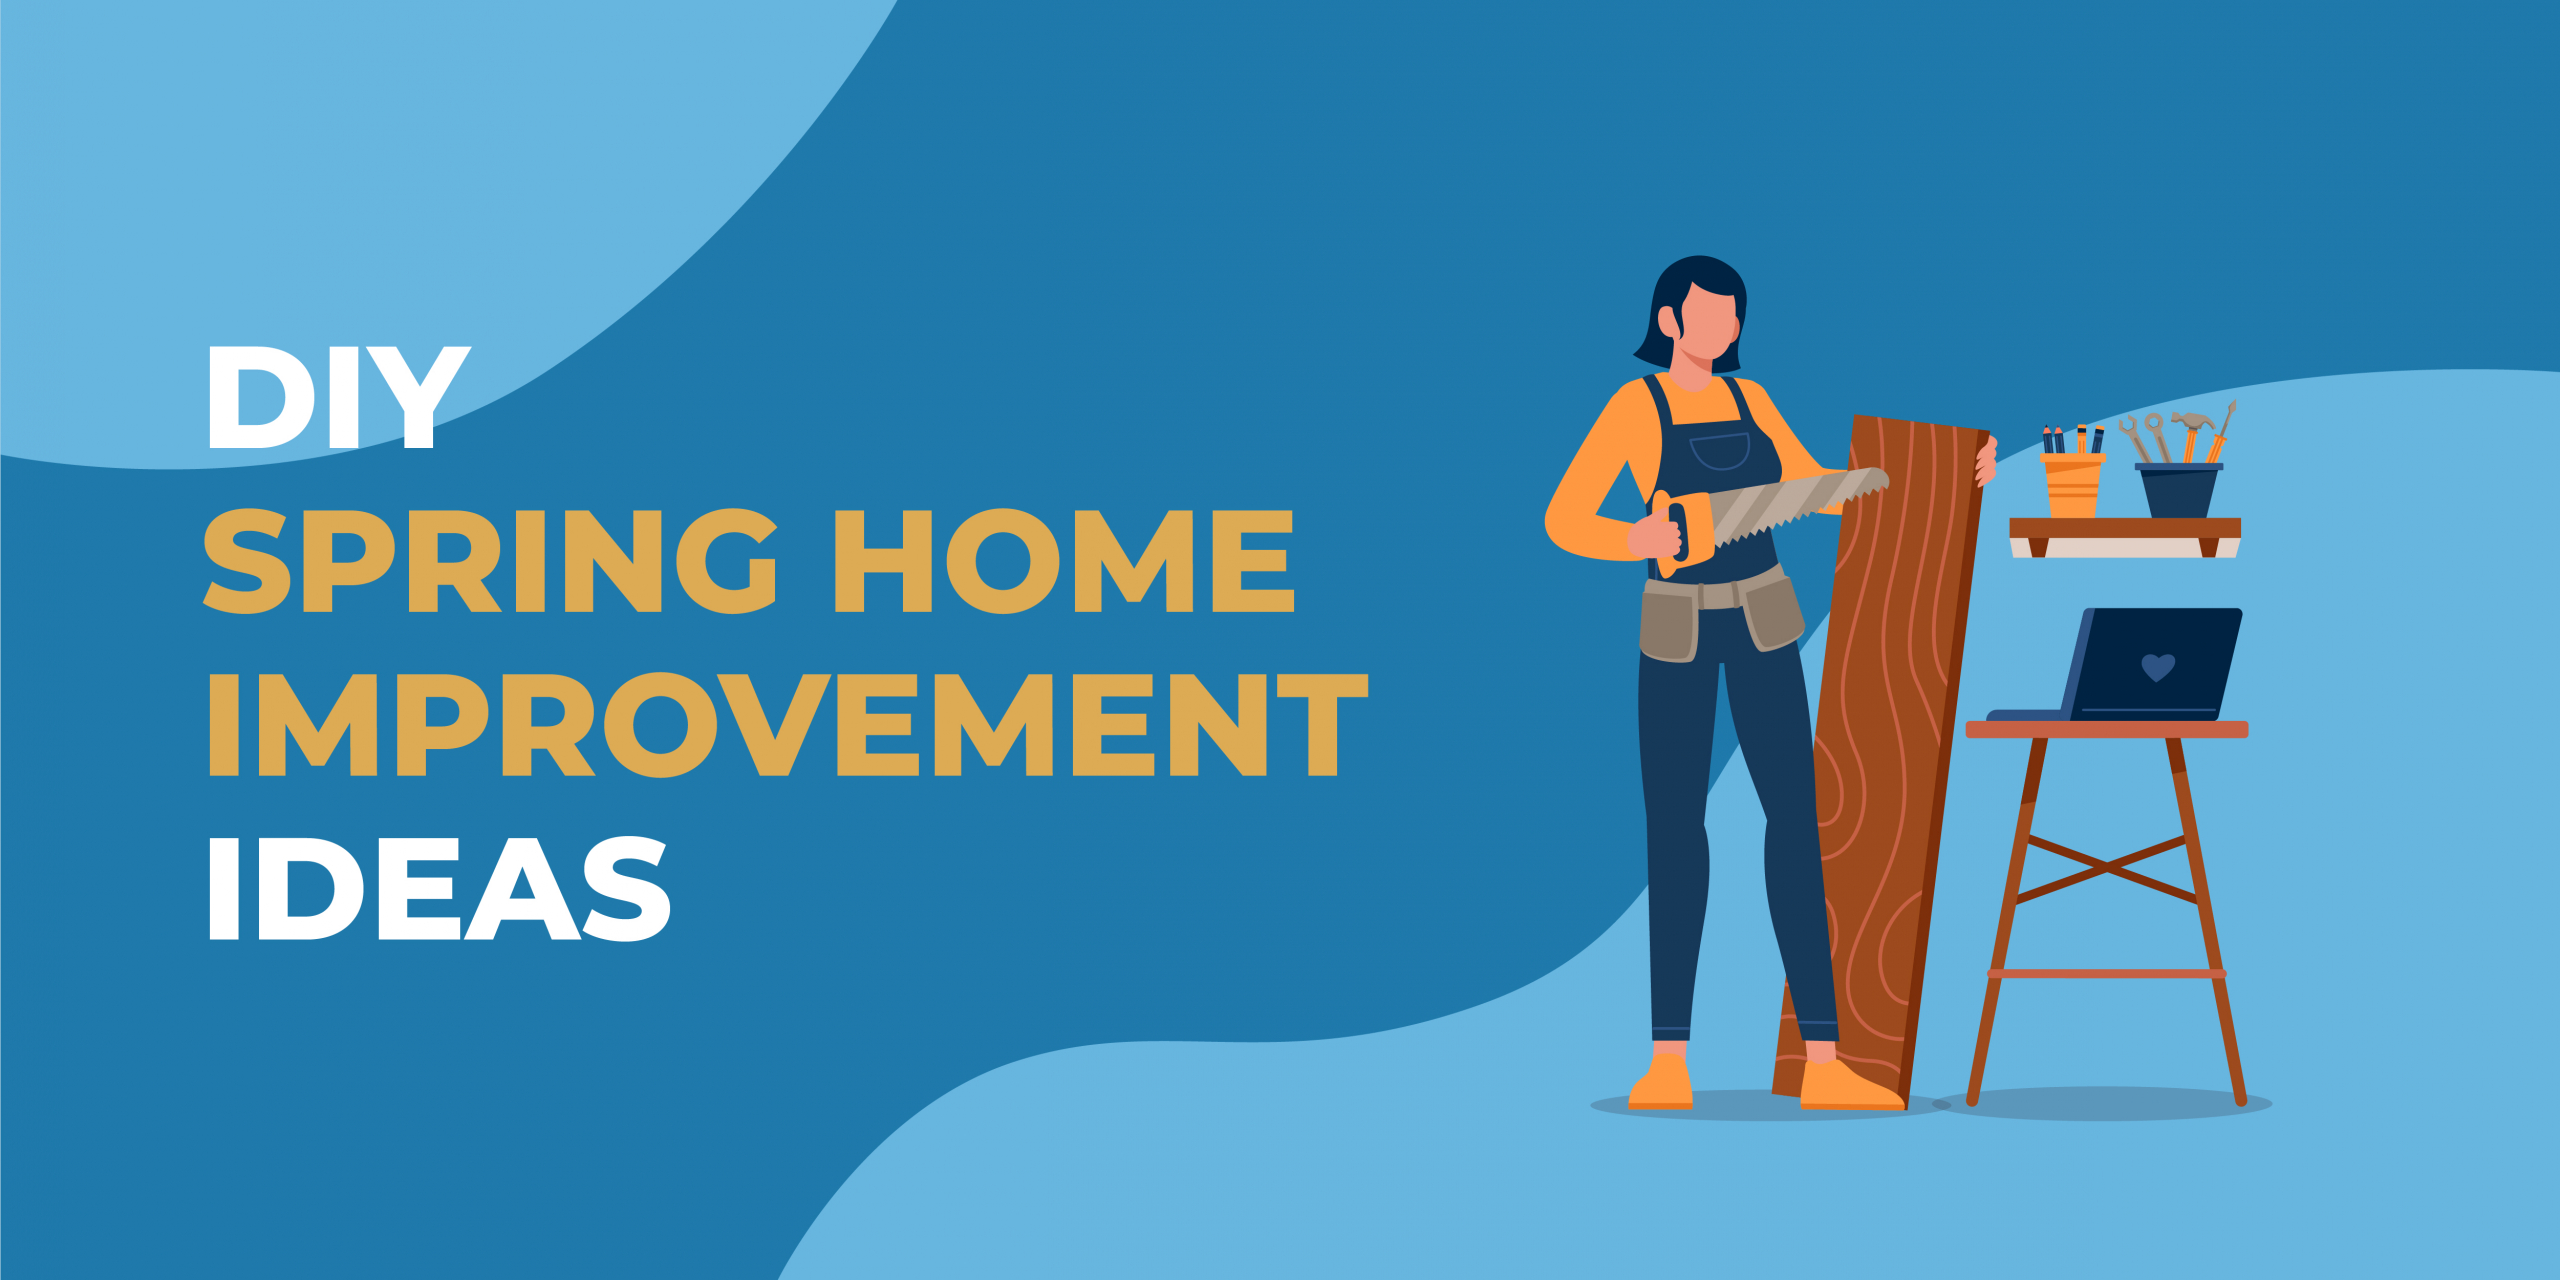 DIY Spring Home Improvement Projects